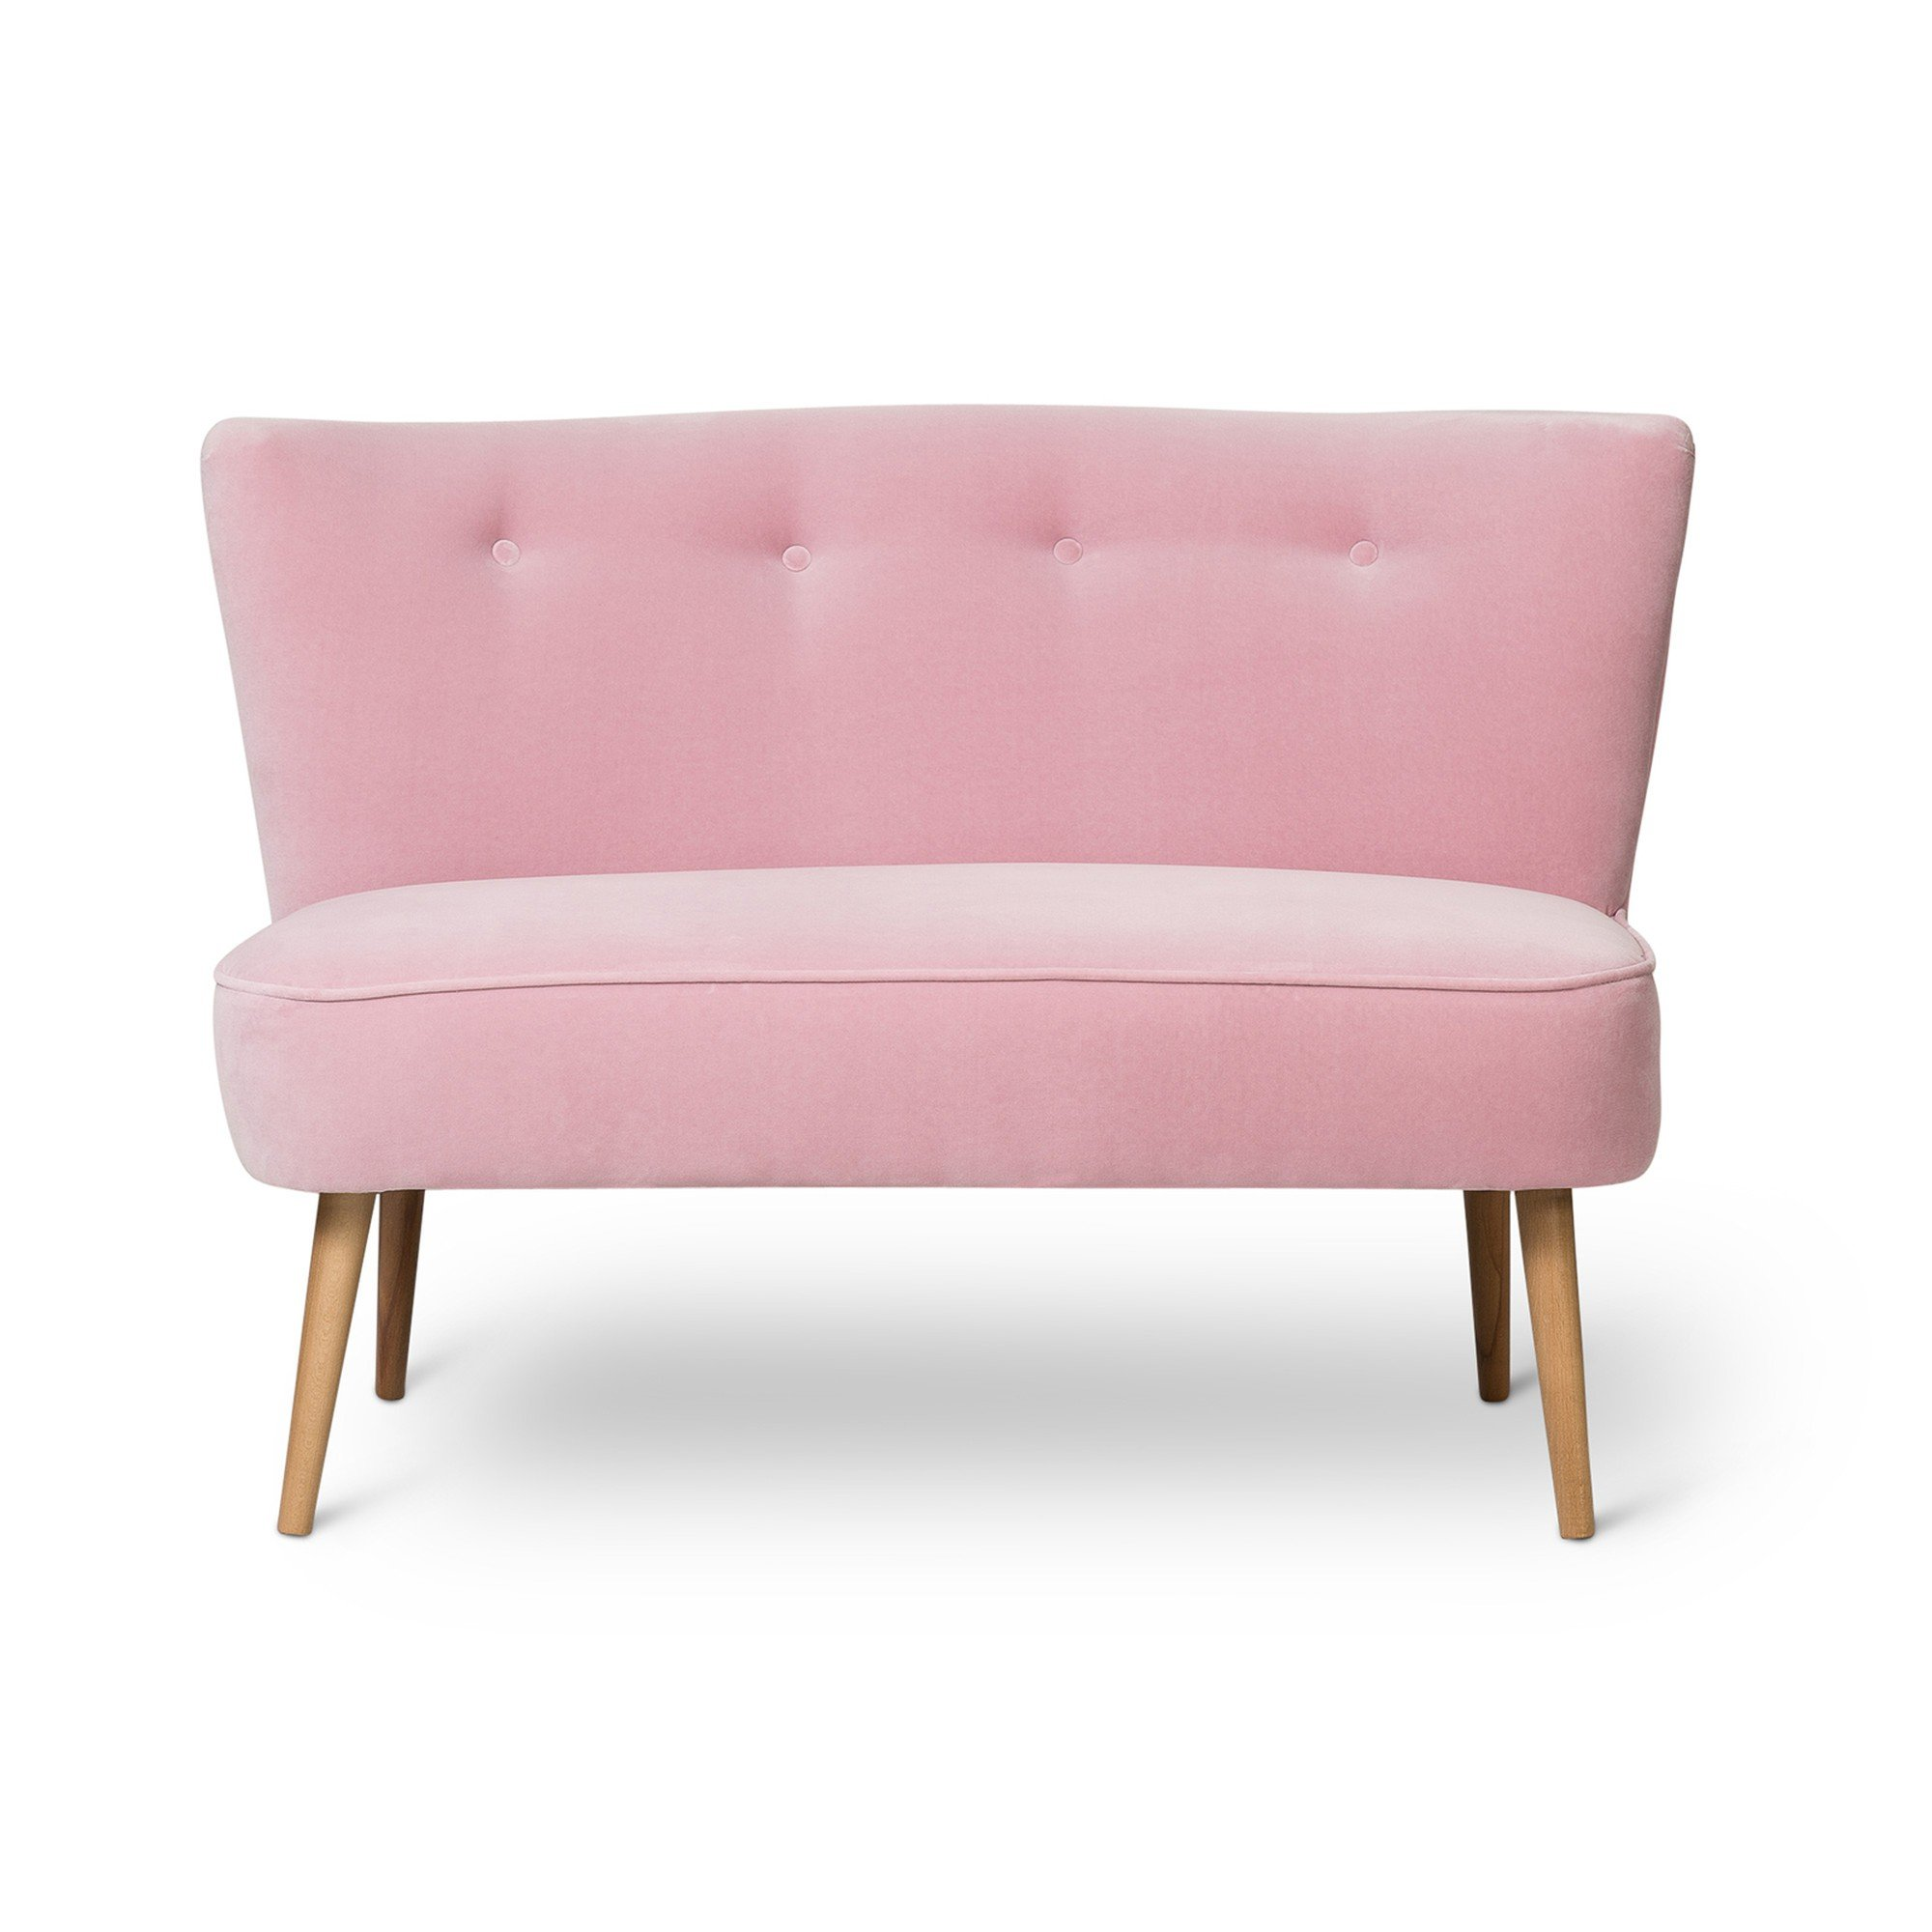 Le Cocktail Velvet Pale Rose Pink Twin Loveseat